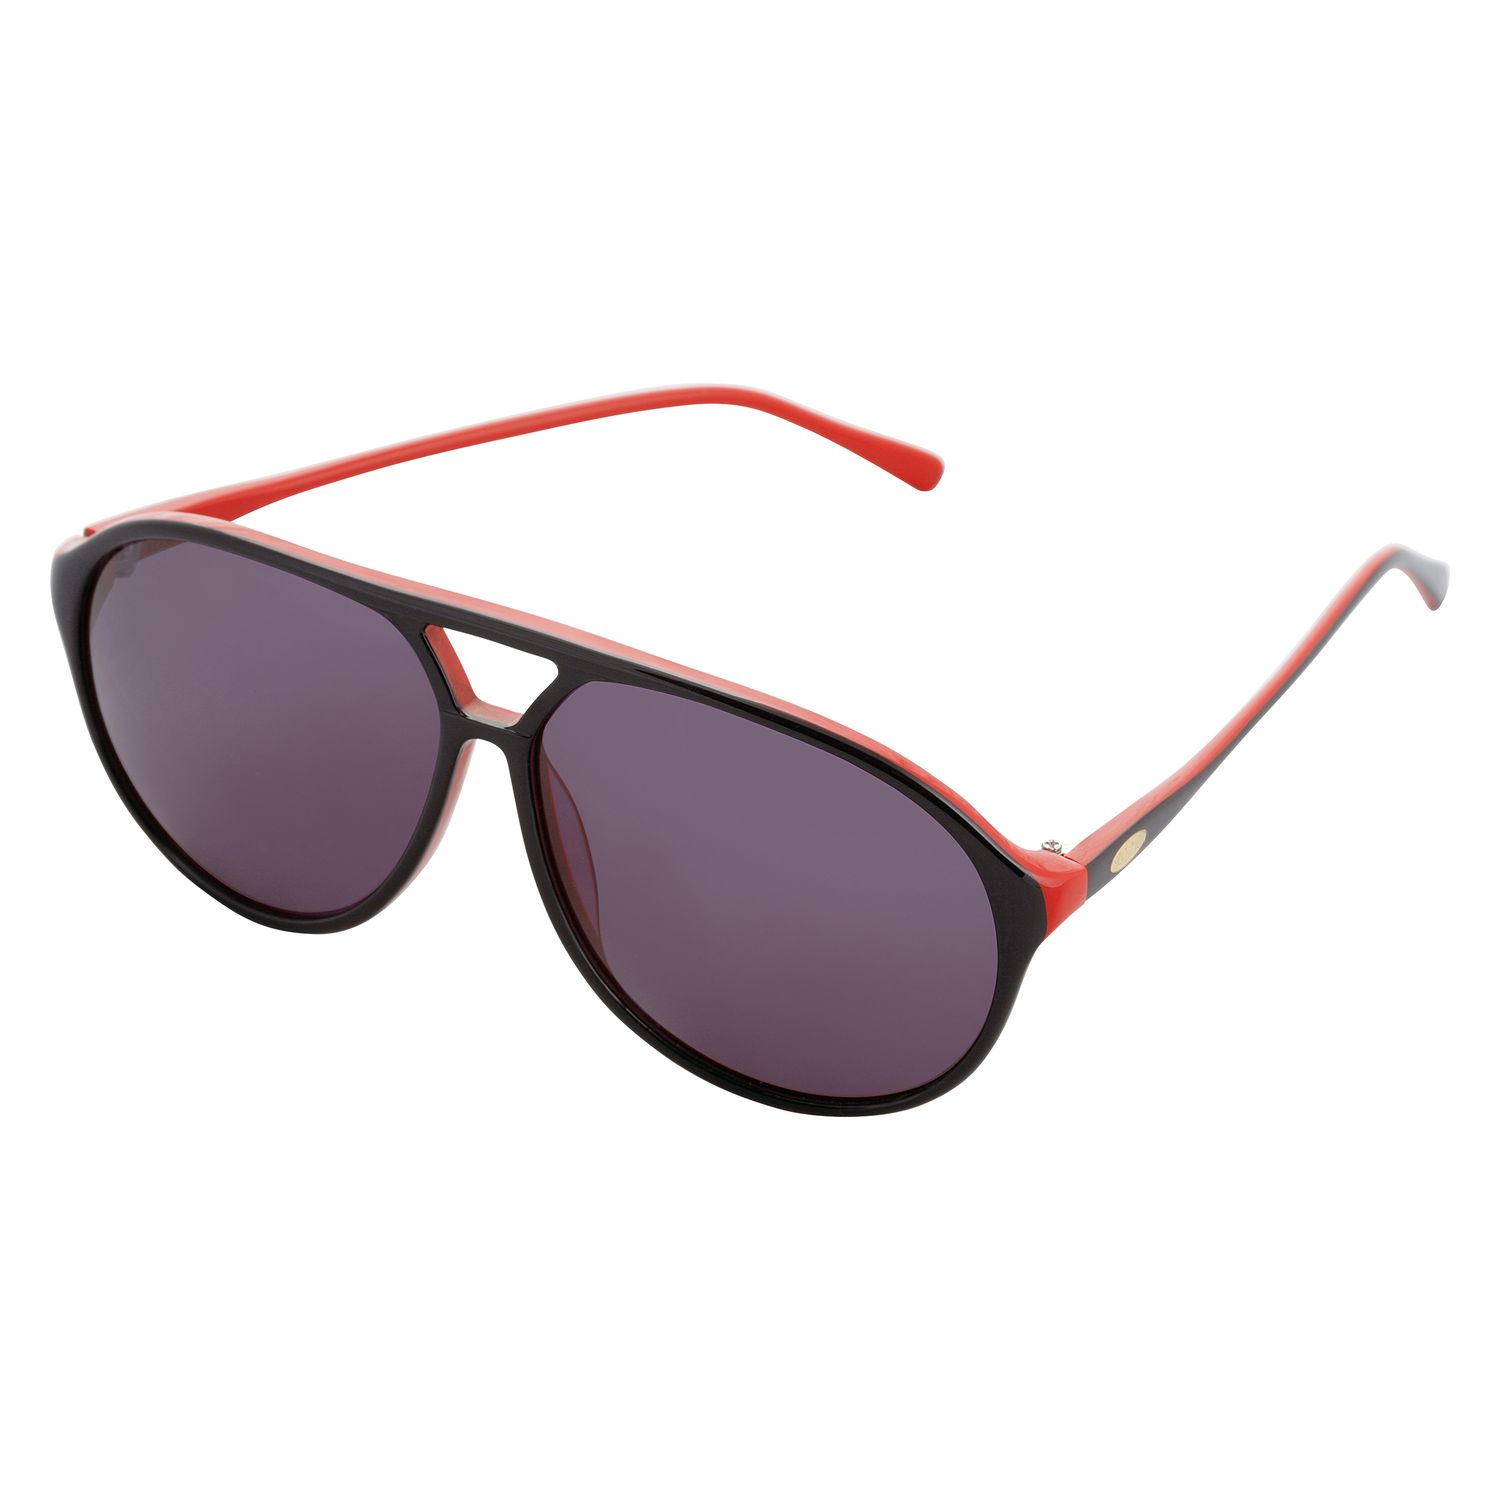 Sonnenbrille RetroRed